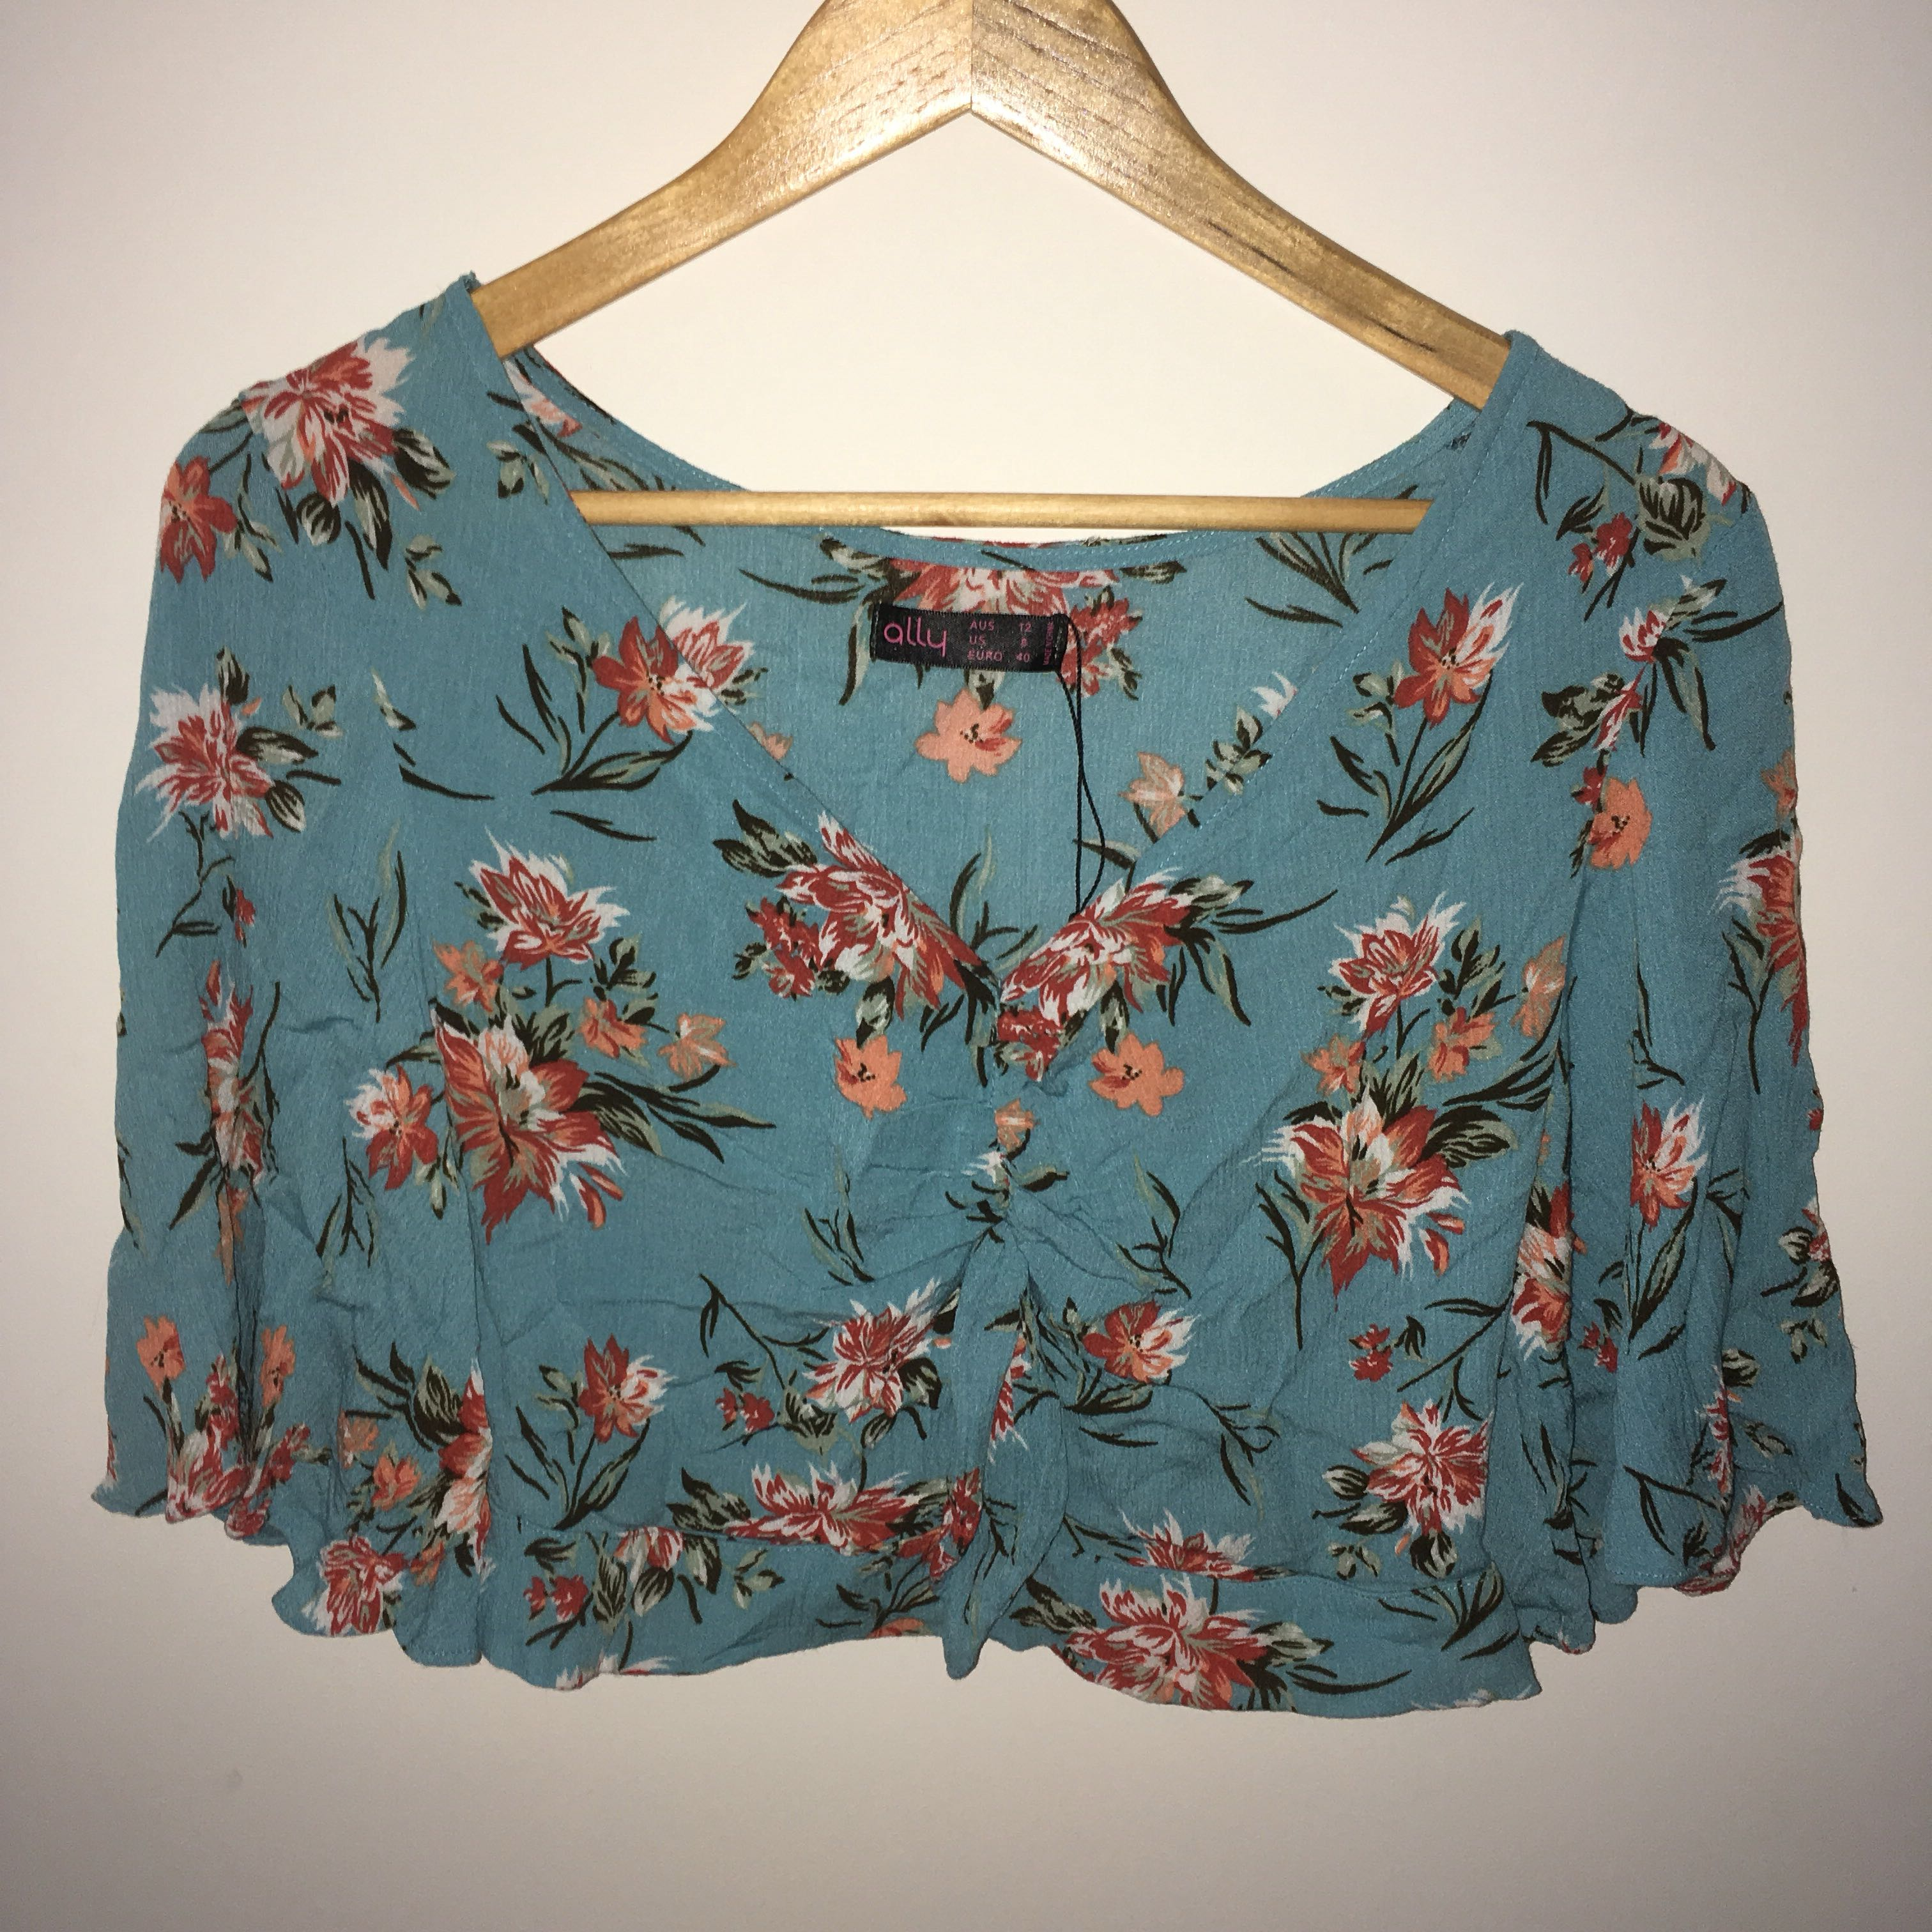 STUNNING HAWAIIAN CROPPED KNOTTED TOP